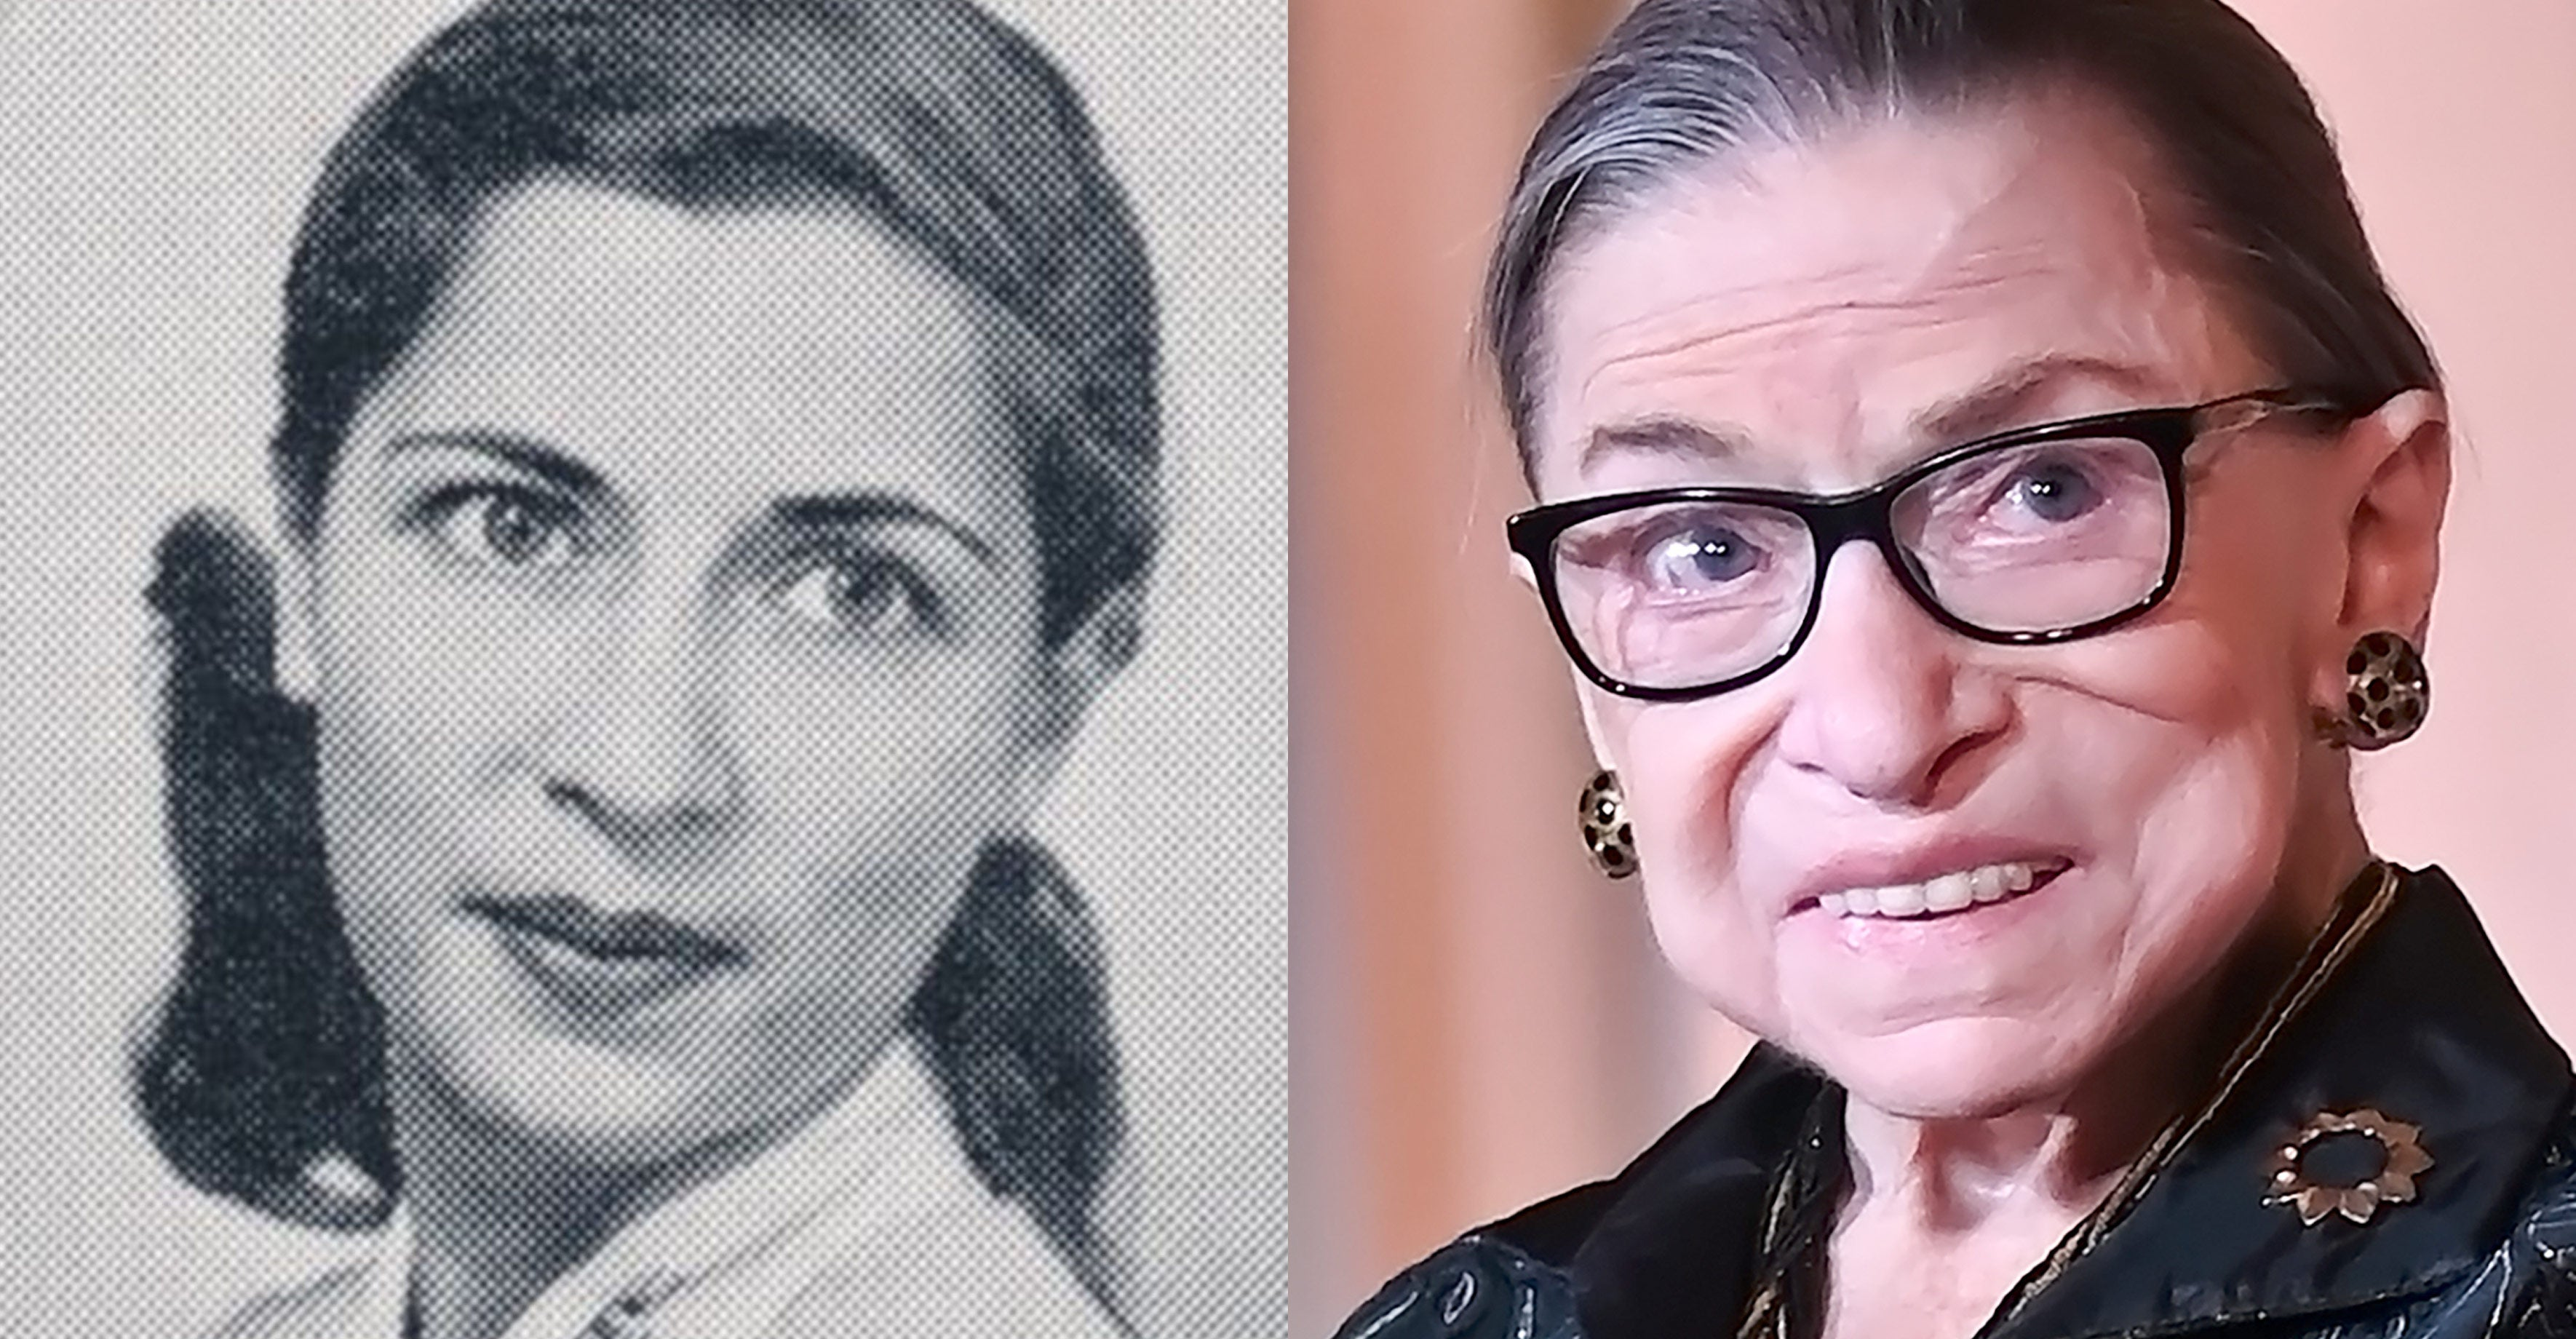 RBG at Harvard Law School and current day RBG.